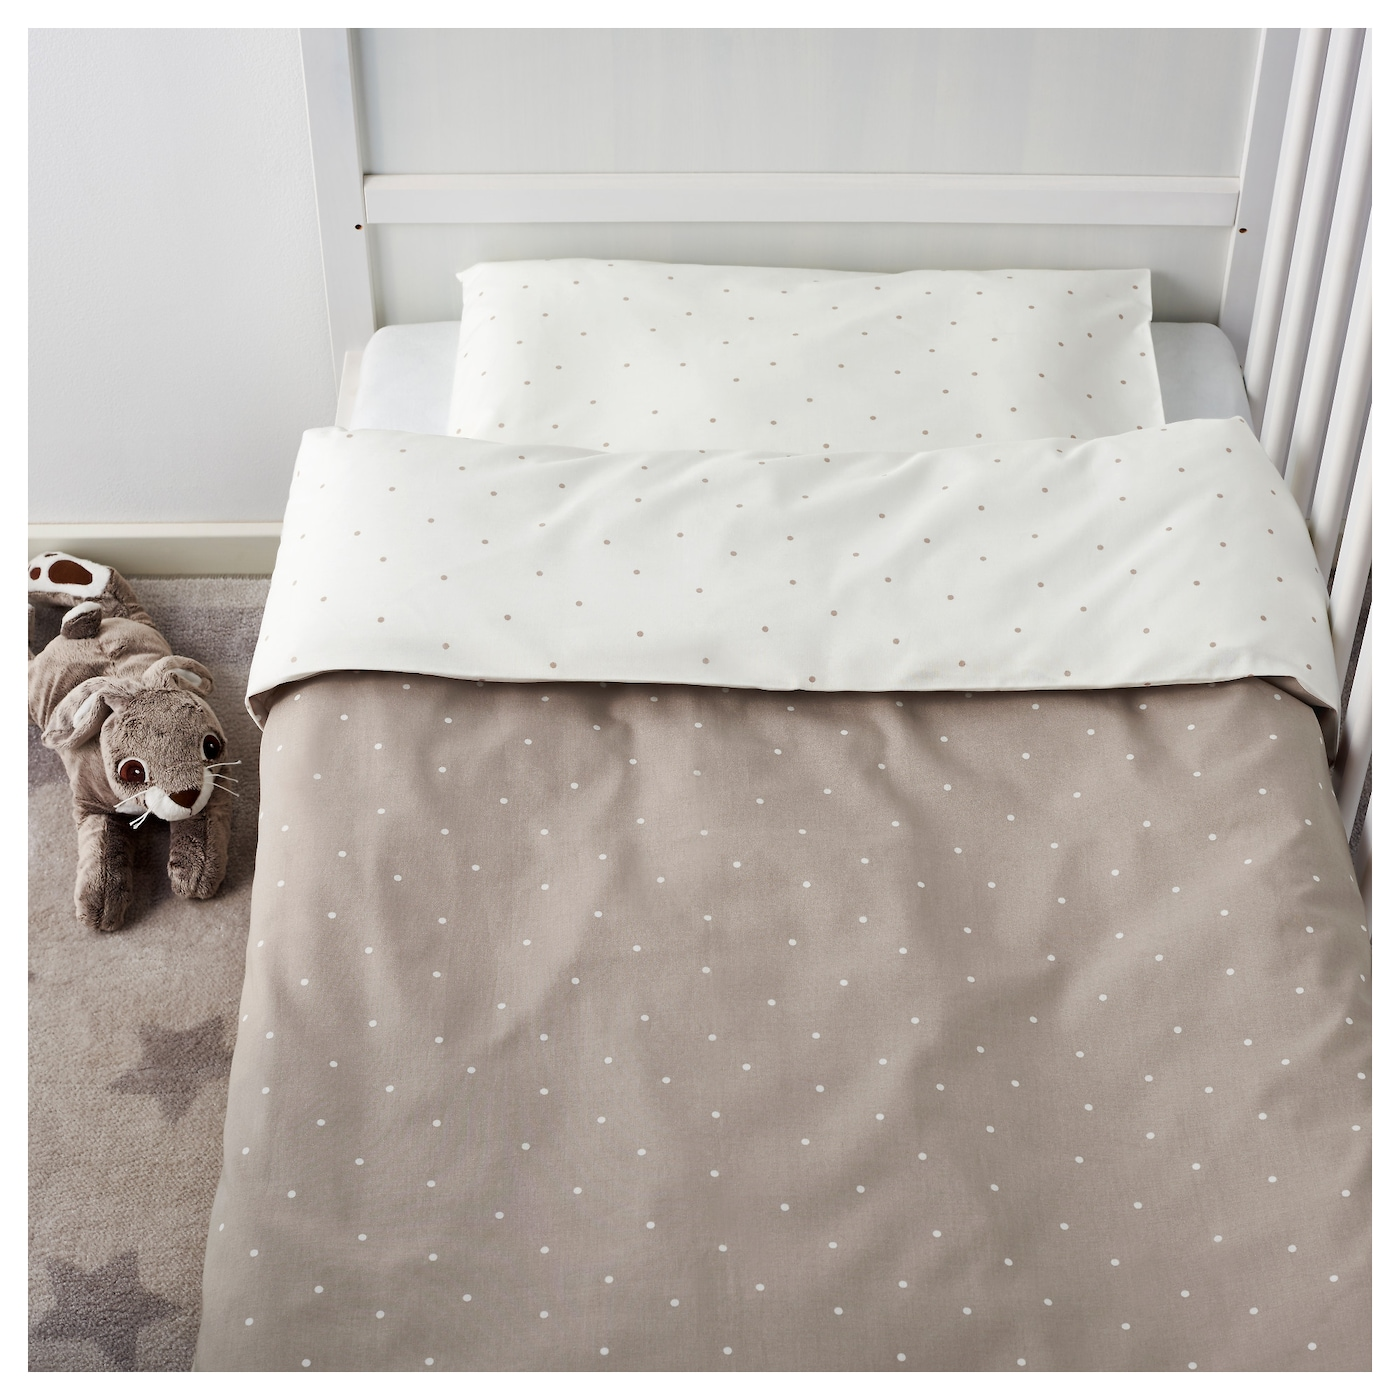 IKEA ÄLSKAD 3-piece bedlinen set for cot Cotton, soft and nice against your child's skin.